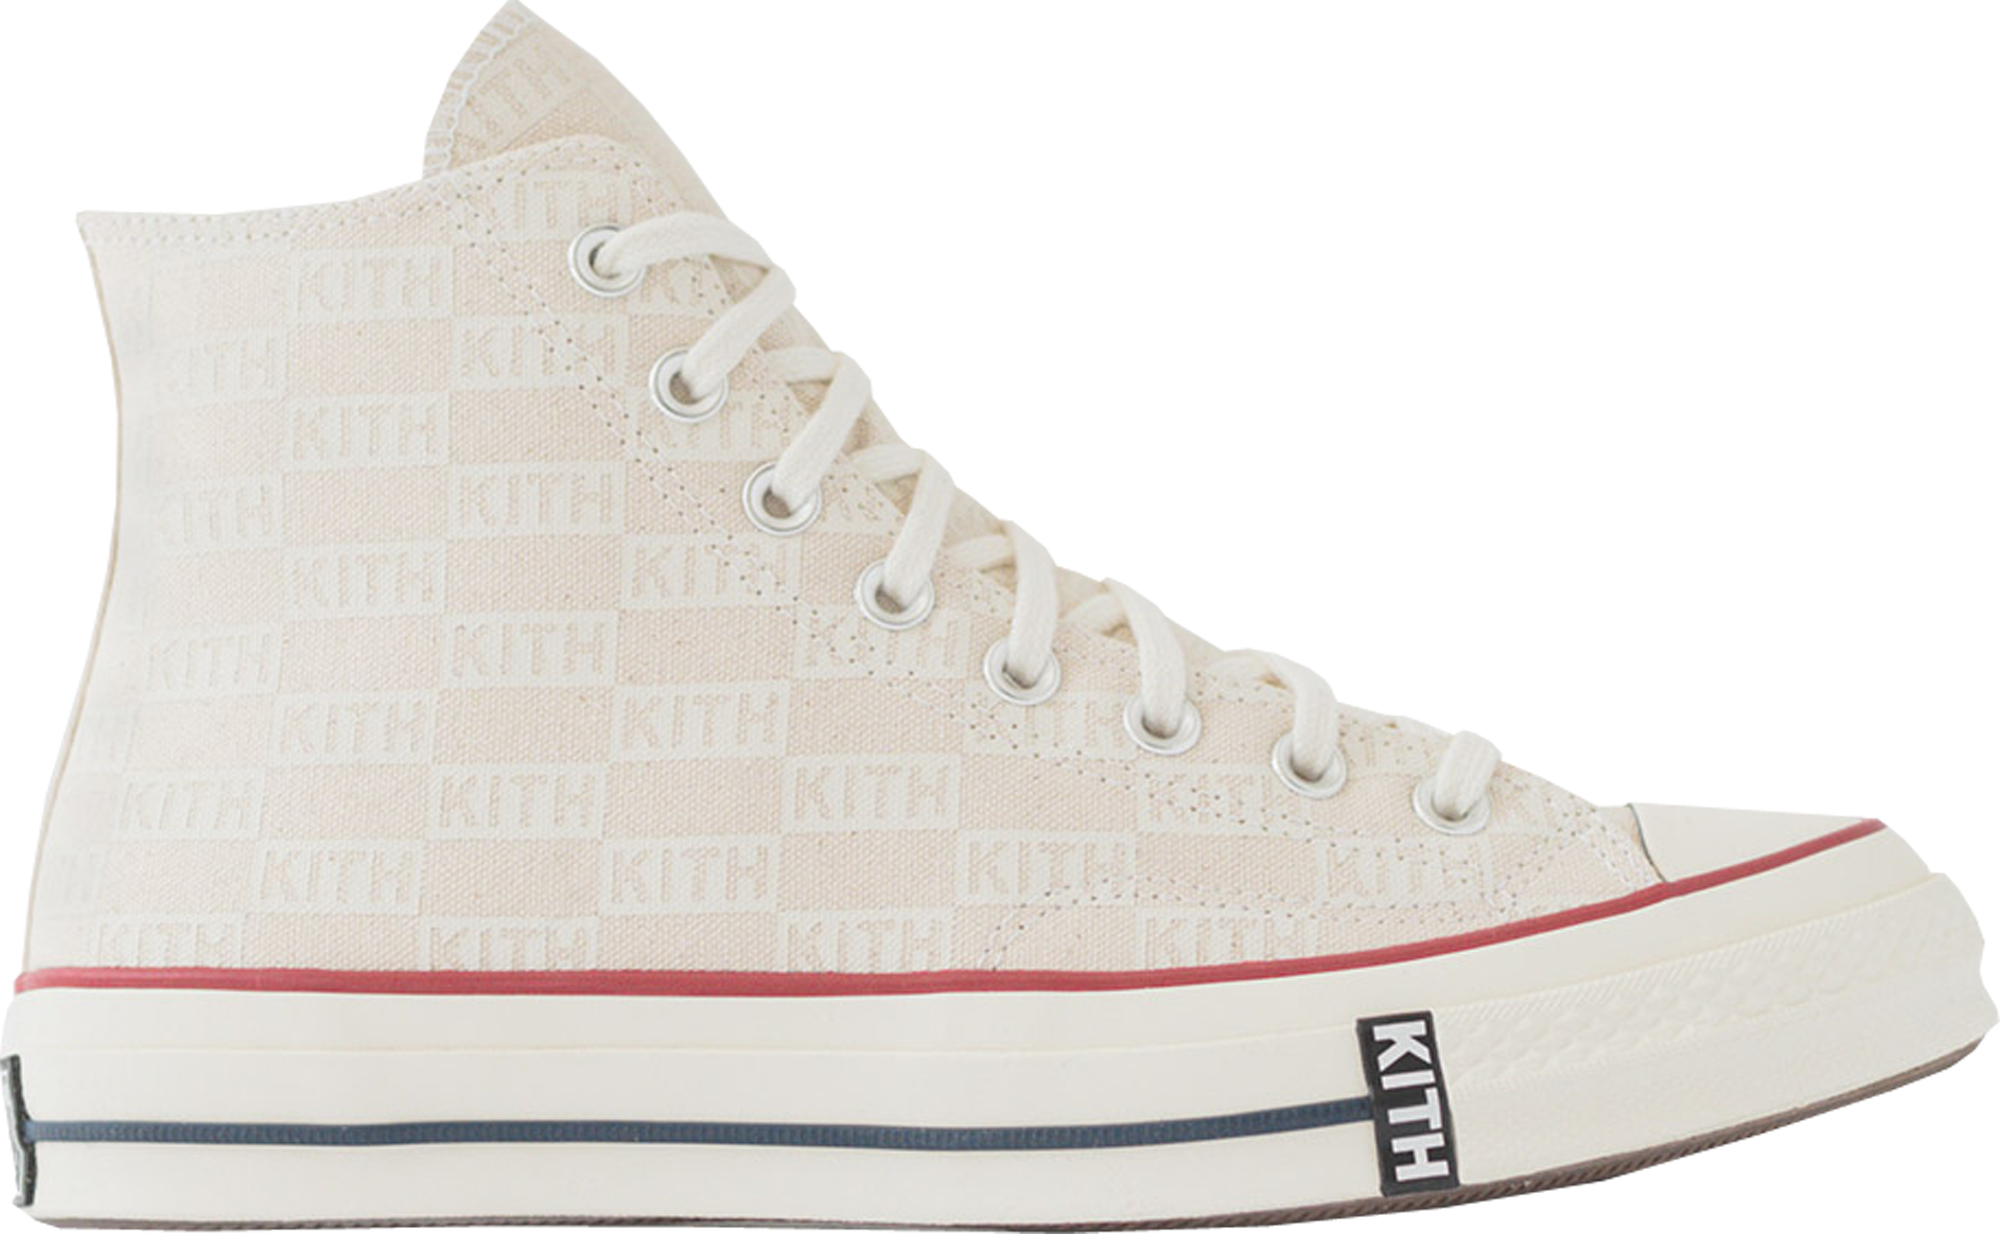 Converse Chuck Taylor All-Star 70s Hi Kith Classics Parchment